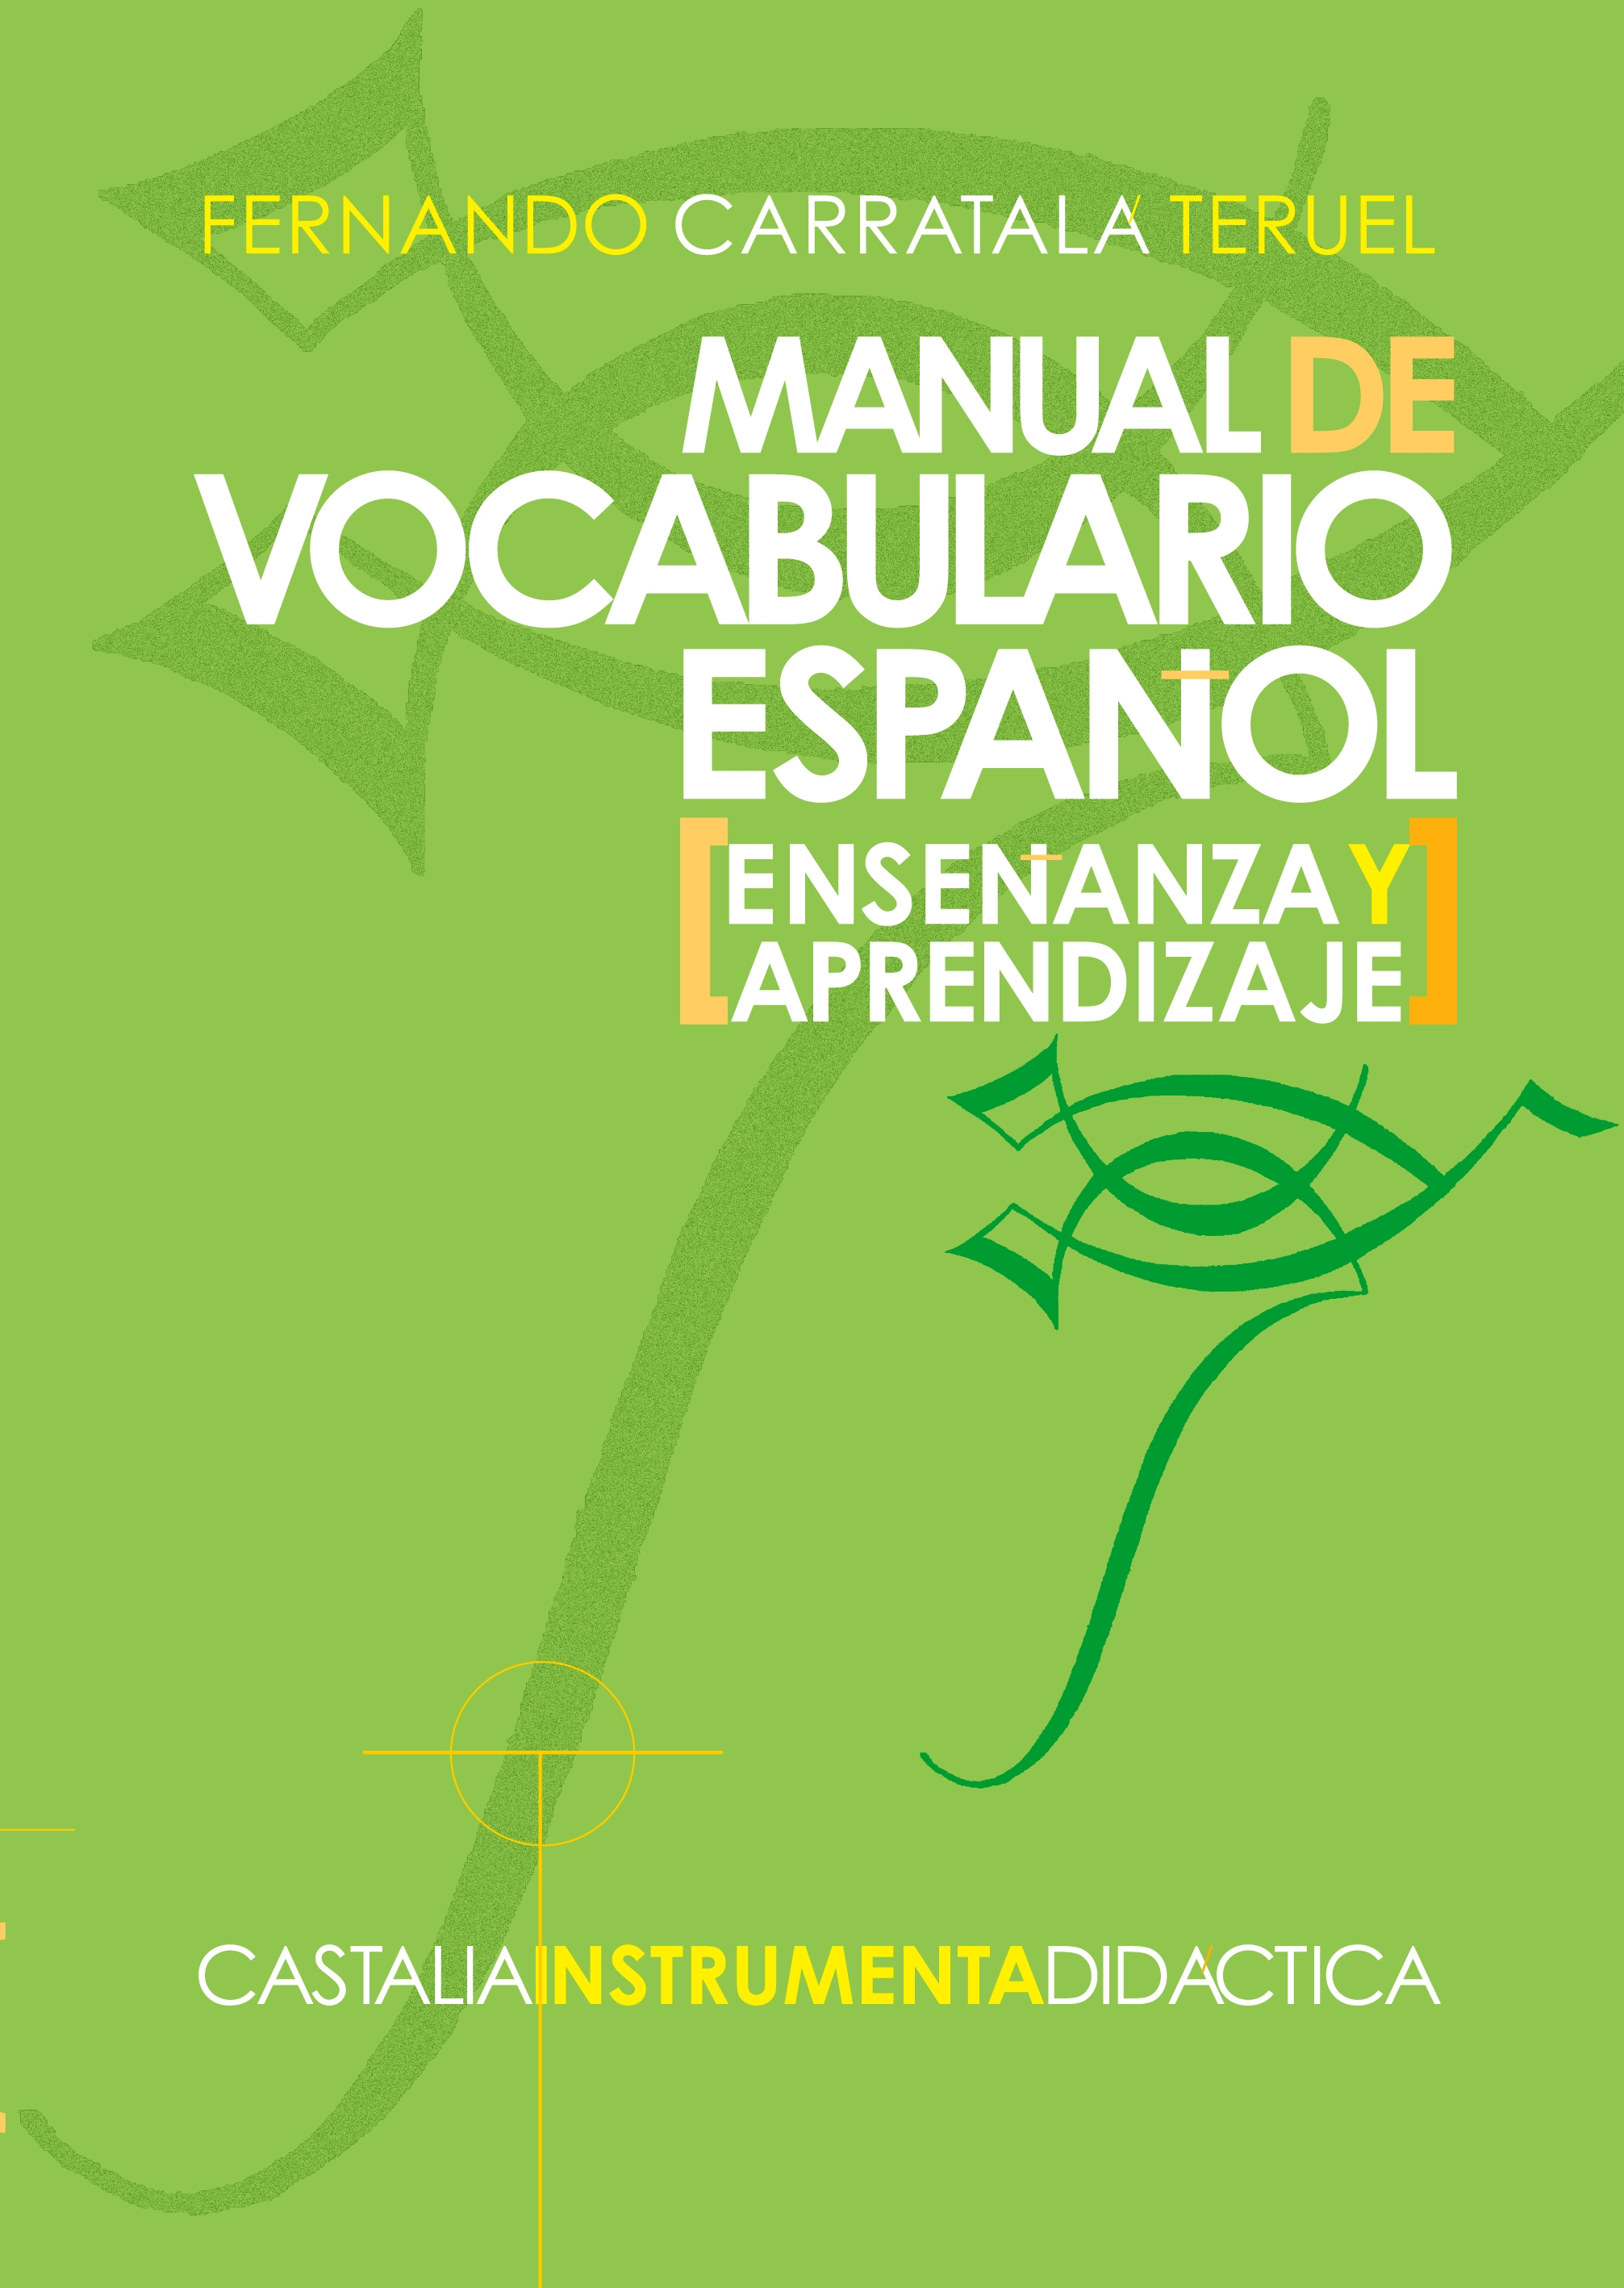 Manual de vocabulario español